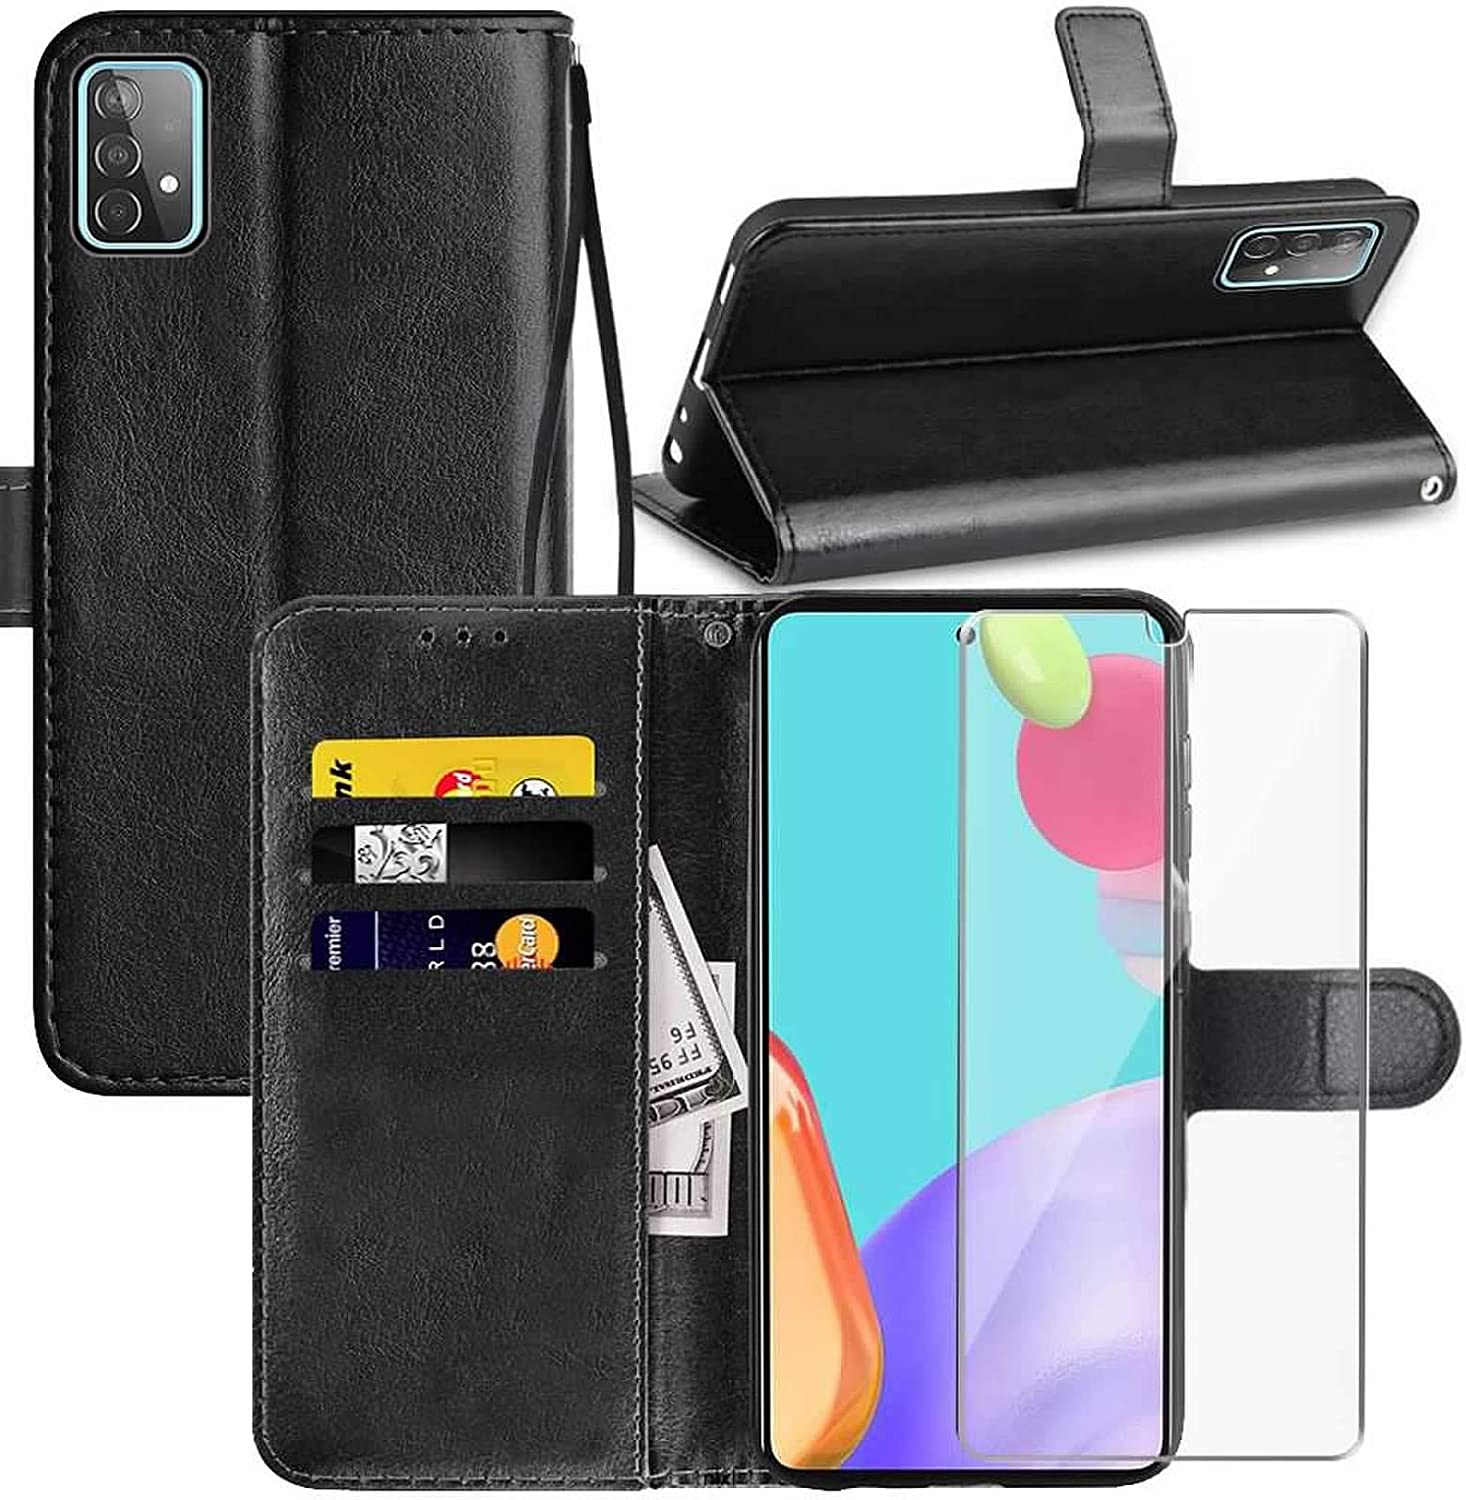 Samsung A52 5G Wallet Case Galaxy A52 5G Case with Screen Protector,PU Leather Wrist Strap Card Slots Soft TPU Shockproof Protective Flip Cover Phone Case for Samsung Galaxy A52 5G,Black